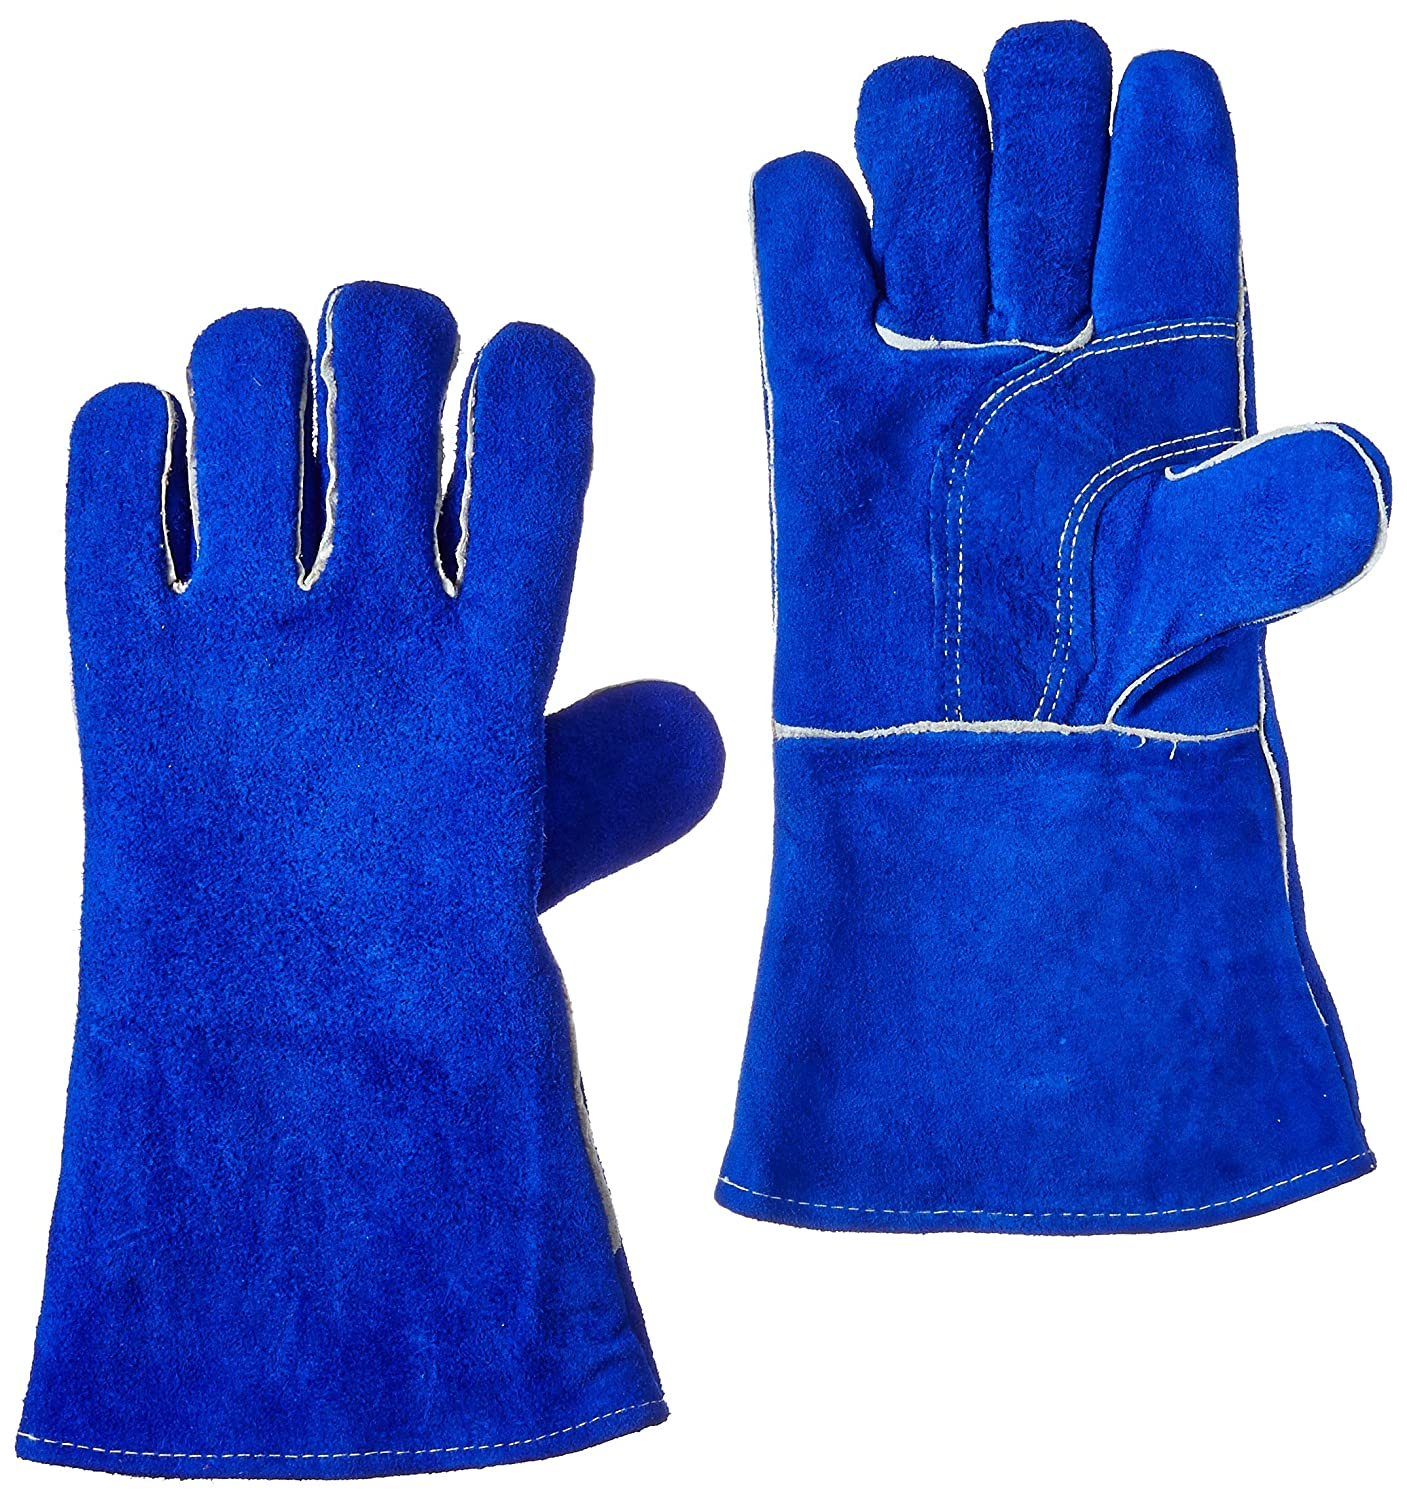 US Forge 400 Welding Gloves Lined Leather, Blue - 14' (2 PACK) Blue - 14 (2 PACK)